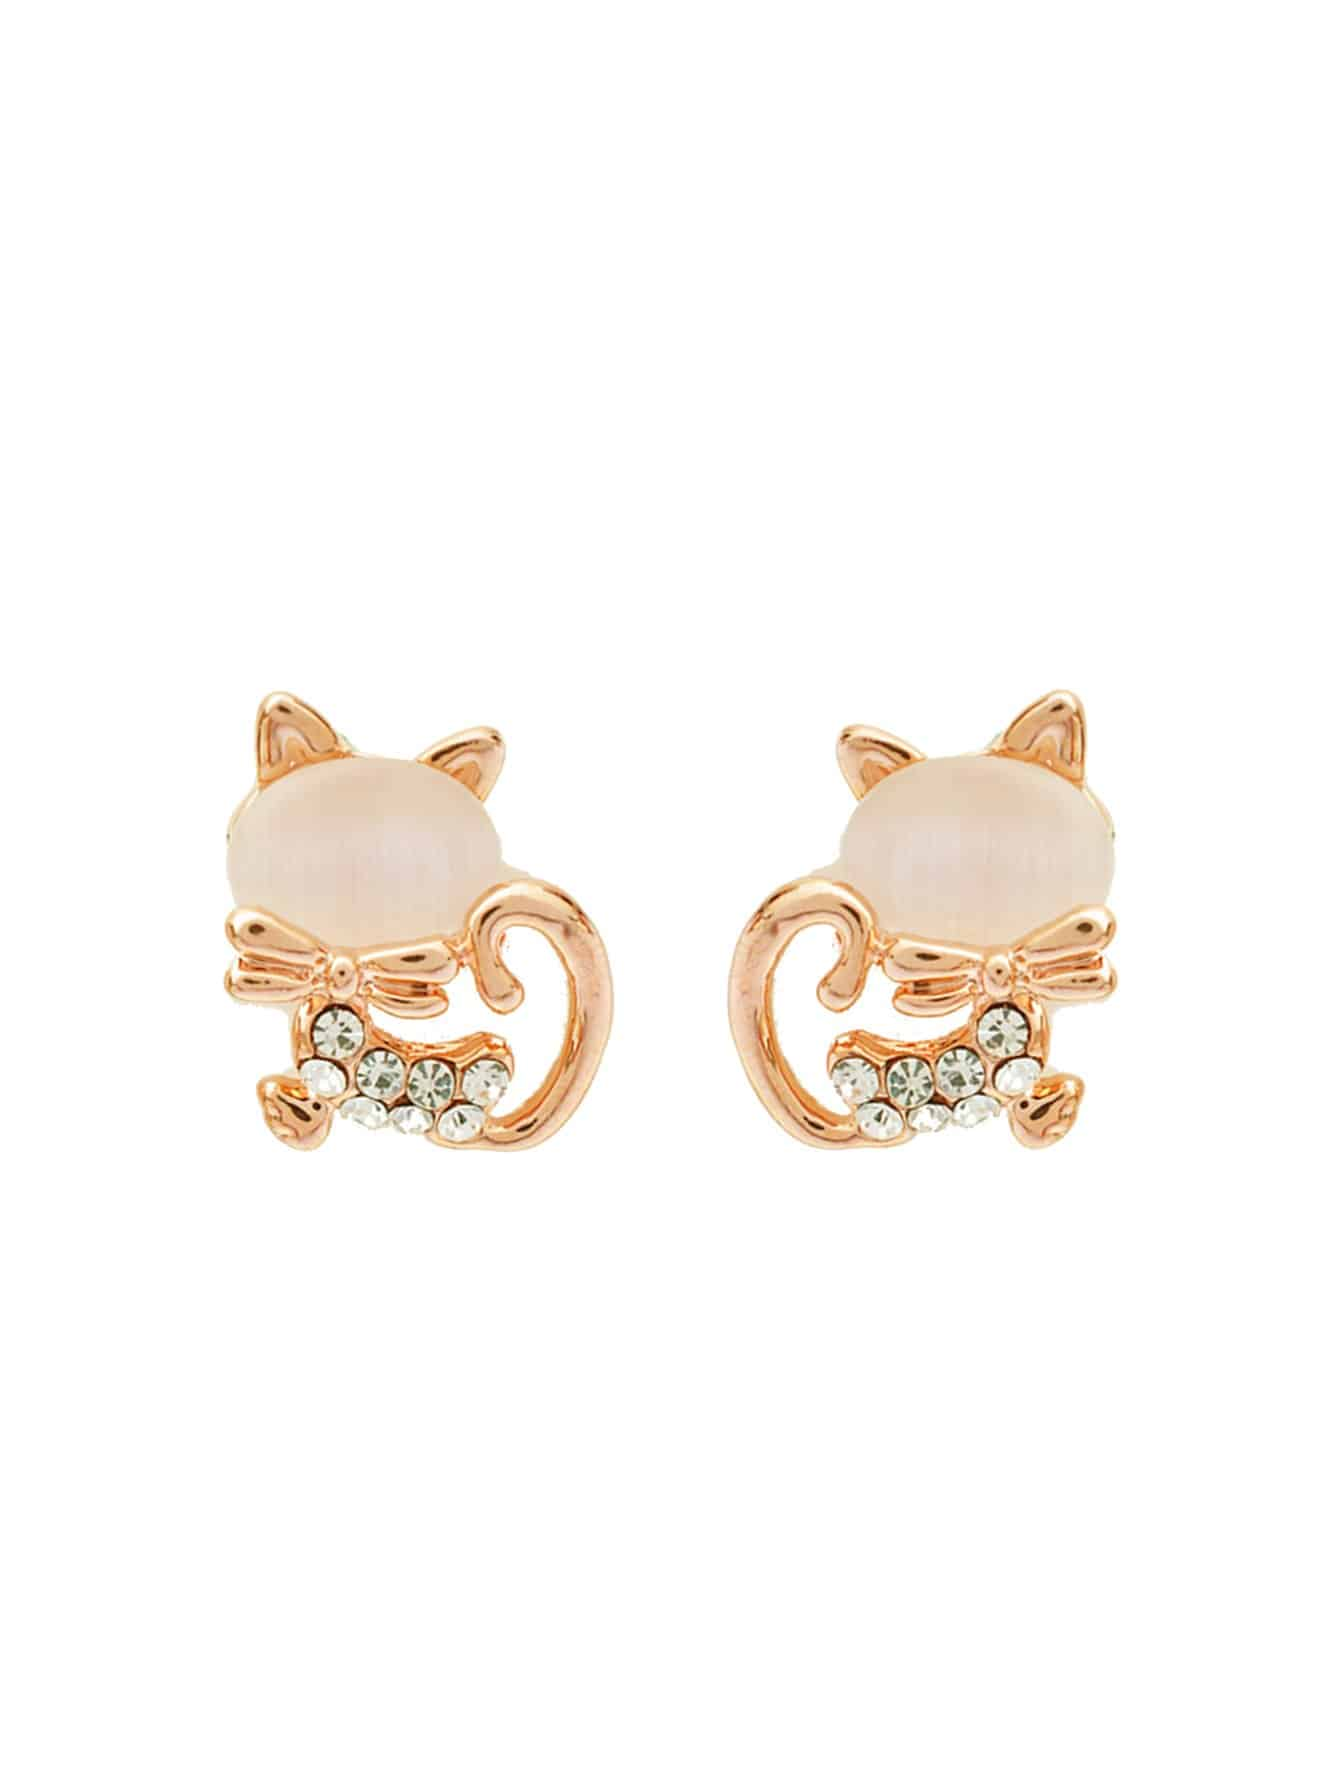 Cat Design Rhinestone Stud Earrings fox head rhinestone stud earrings